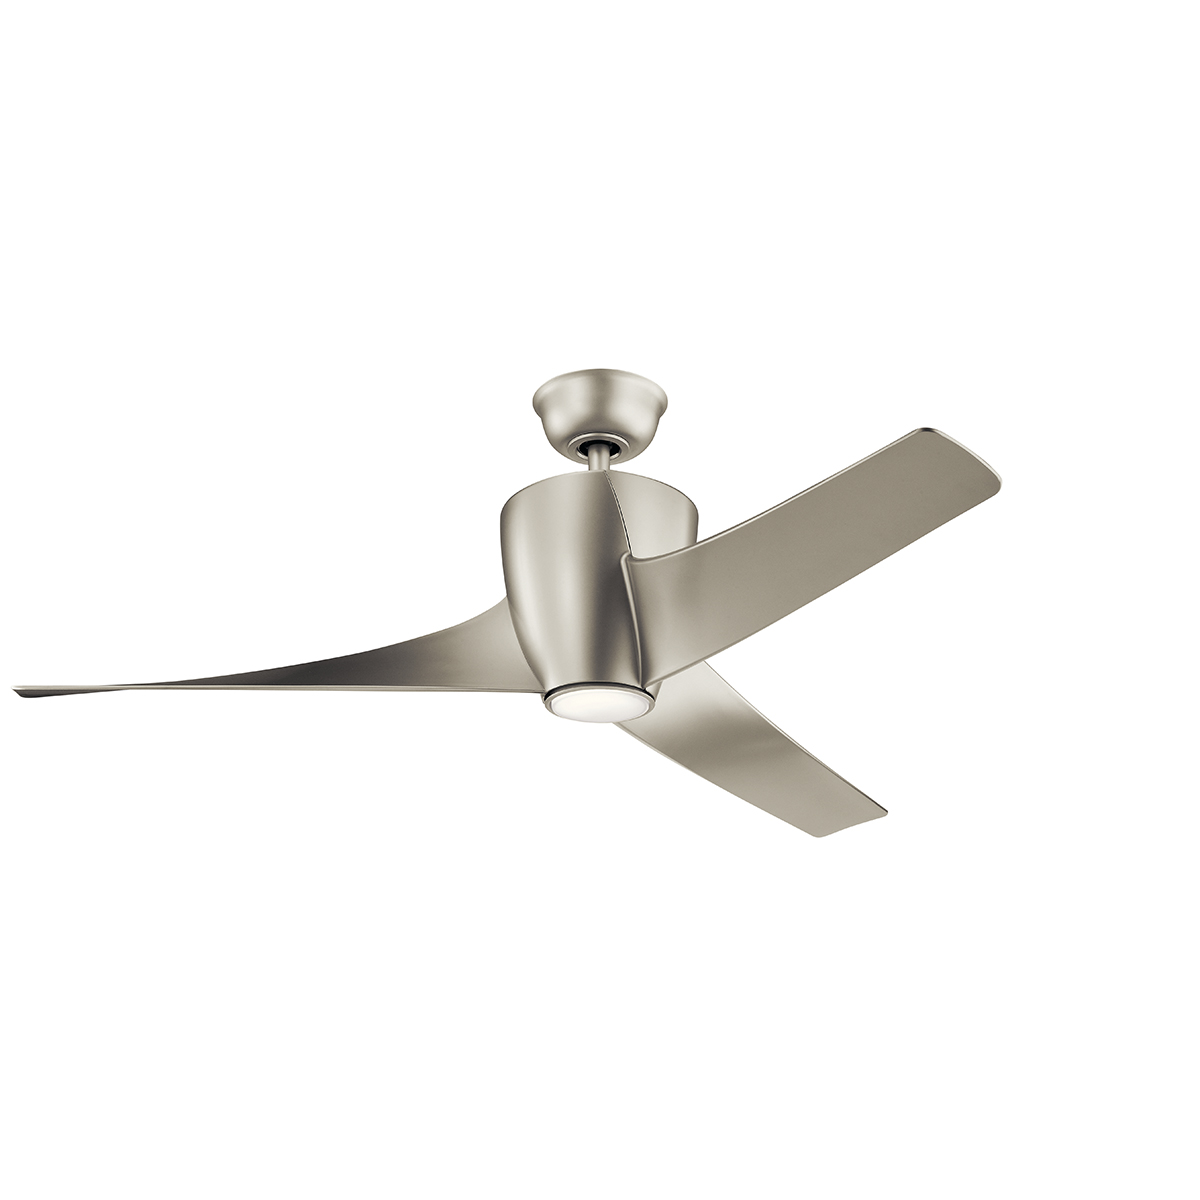 Ventilateur Phree 310175NI